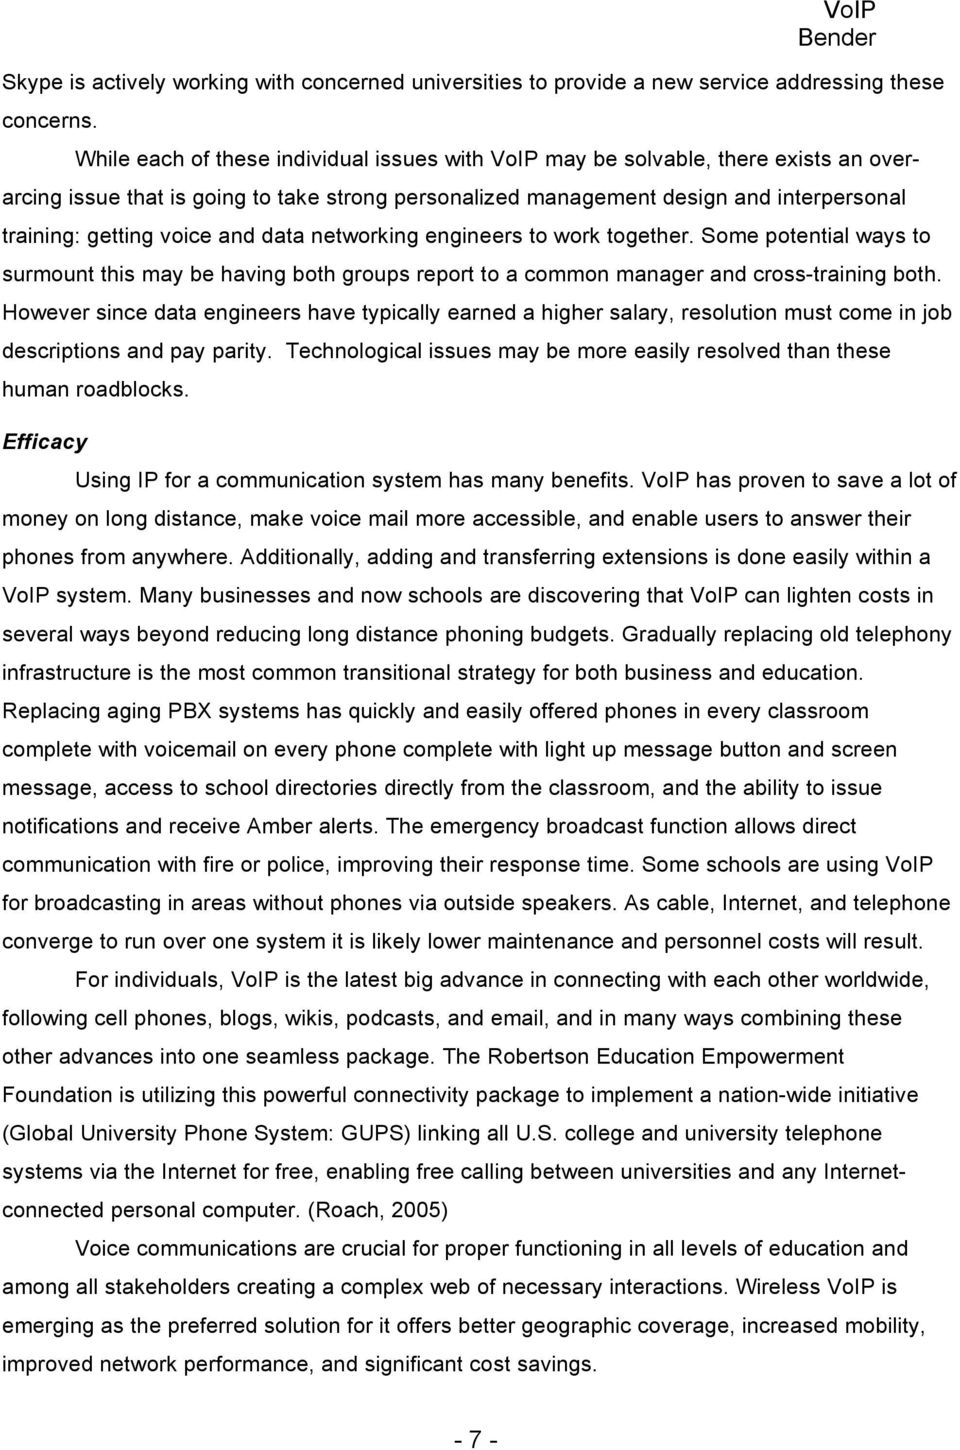 and data networking engineers to work together. Some potential ways to surmount this may be having both groups report to a common manager and cross-training both.